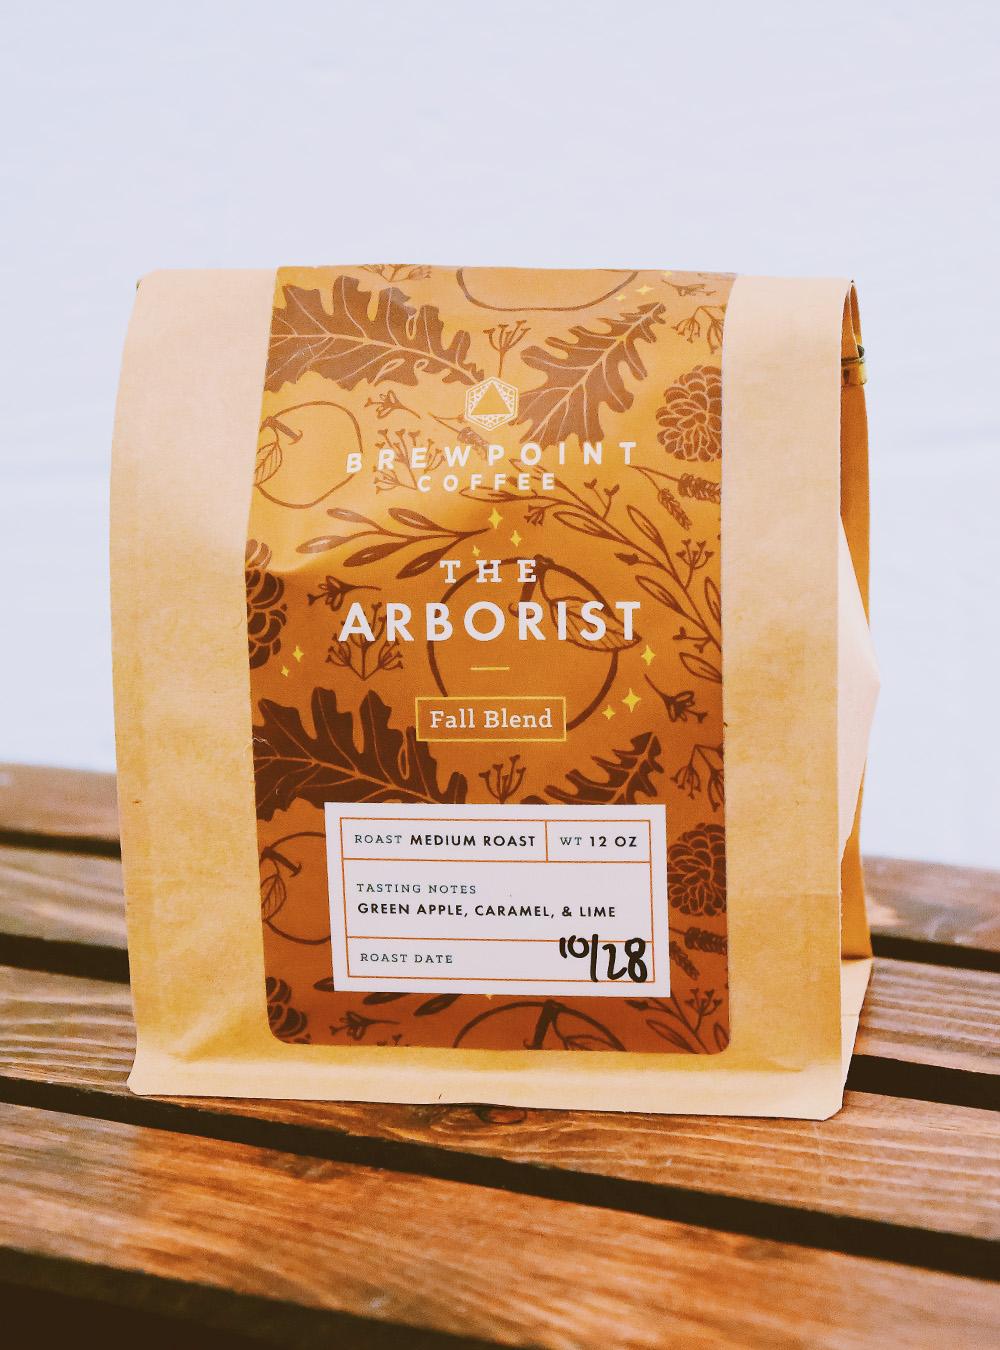 Packaging design for Brewpoint Coffee's fall blend –The Arborist.